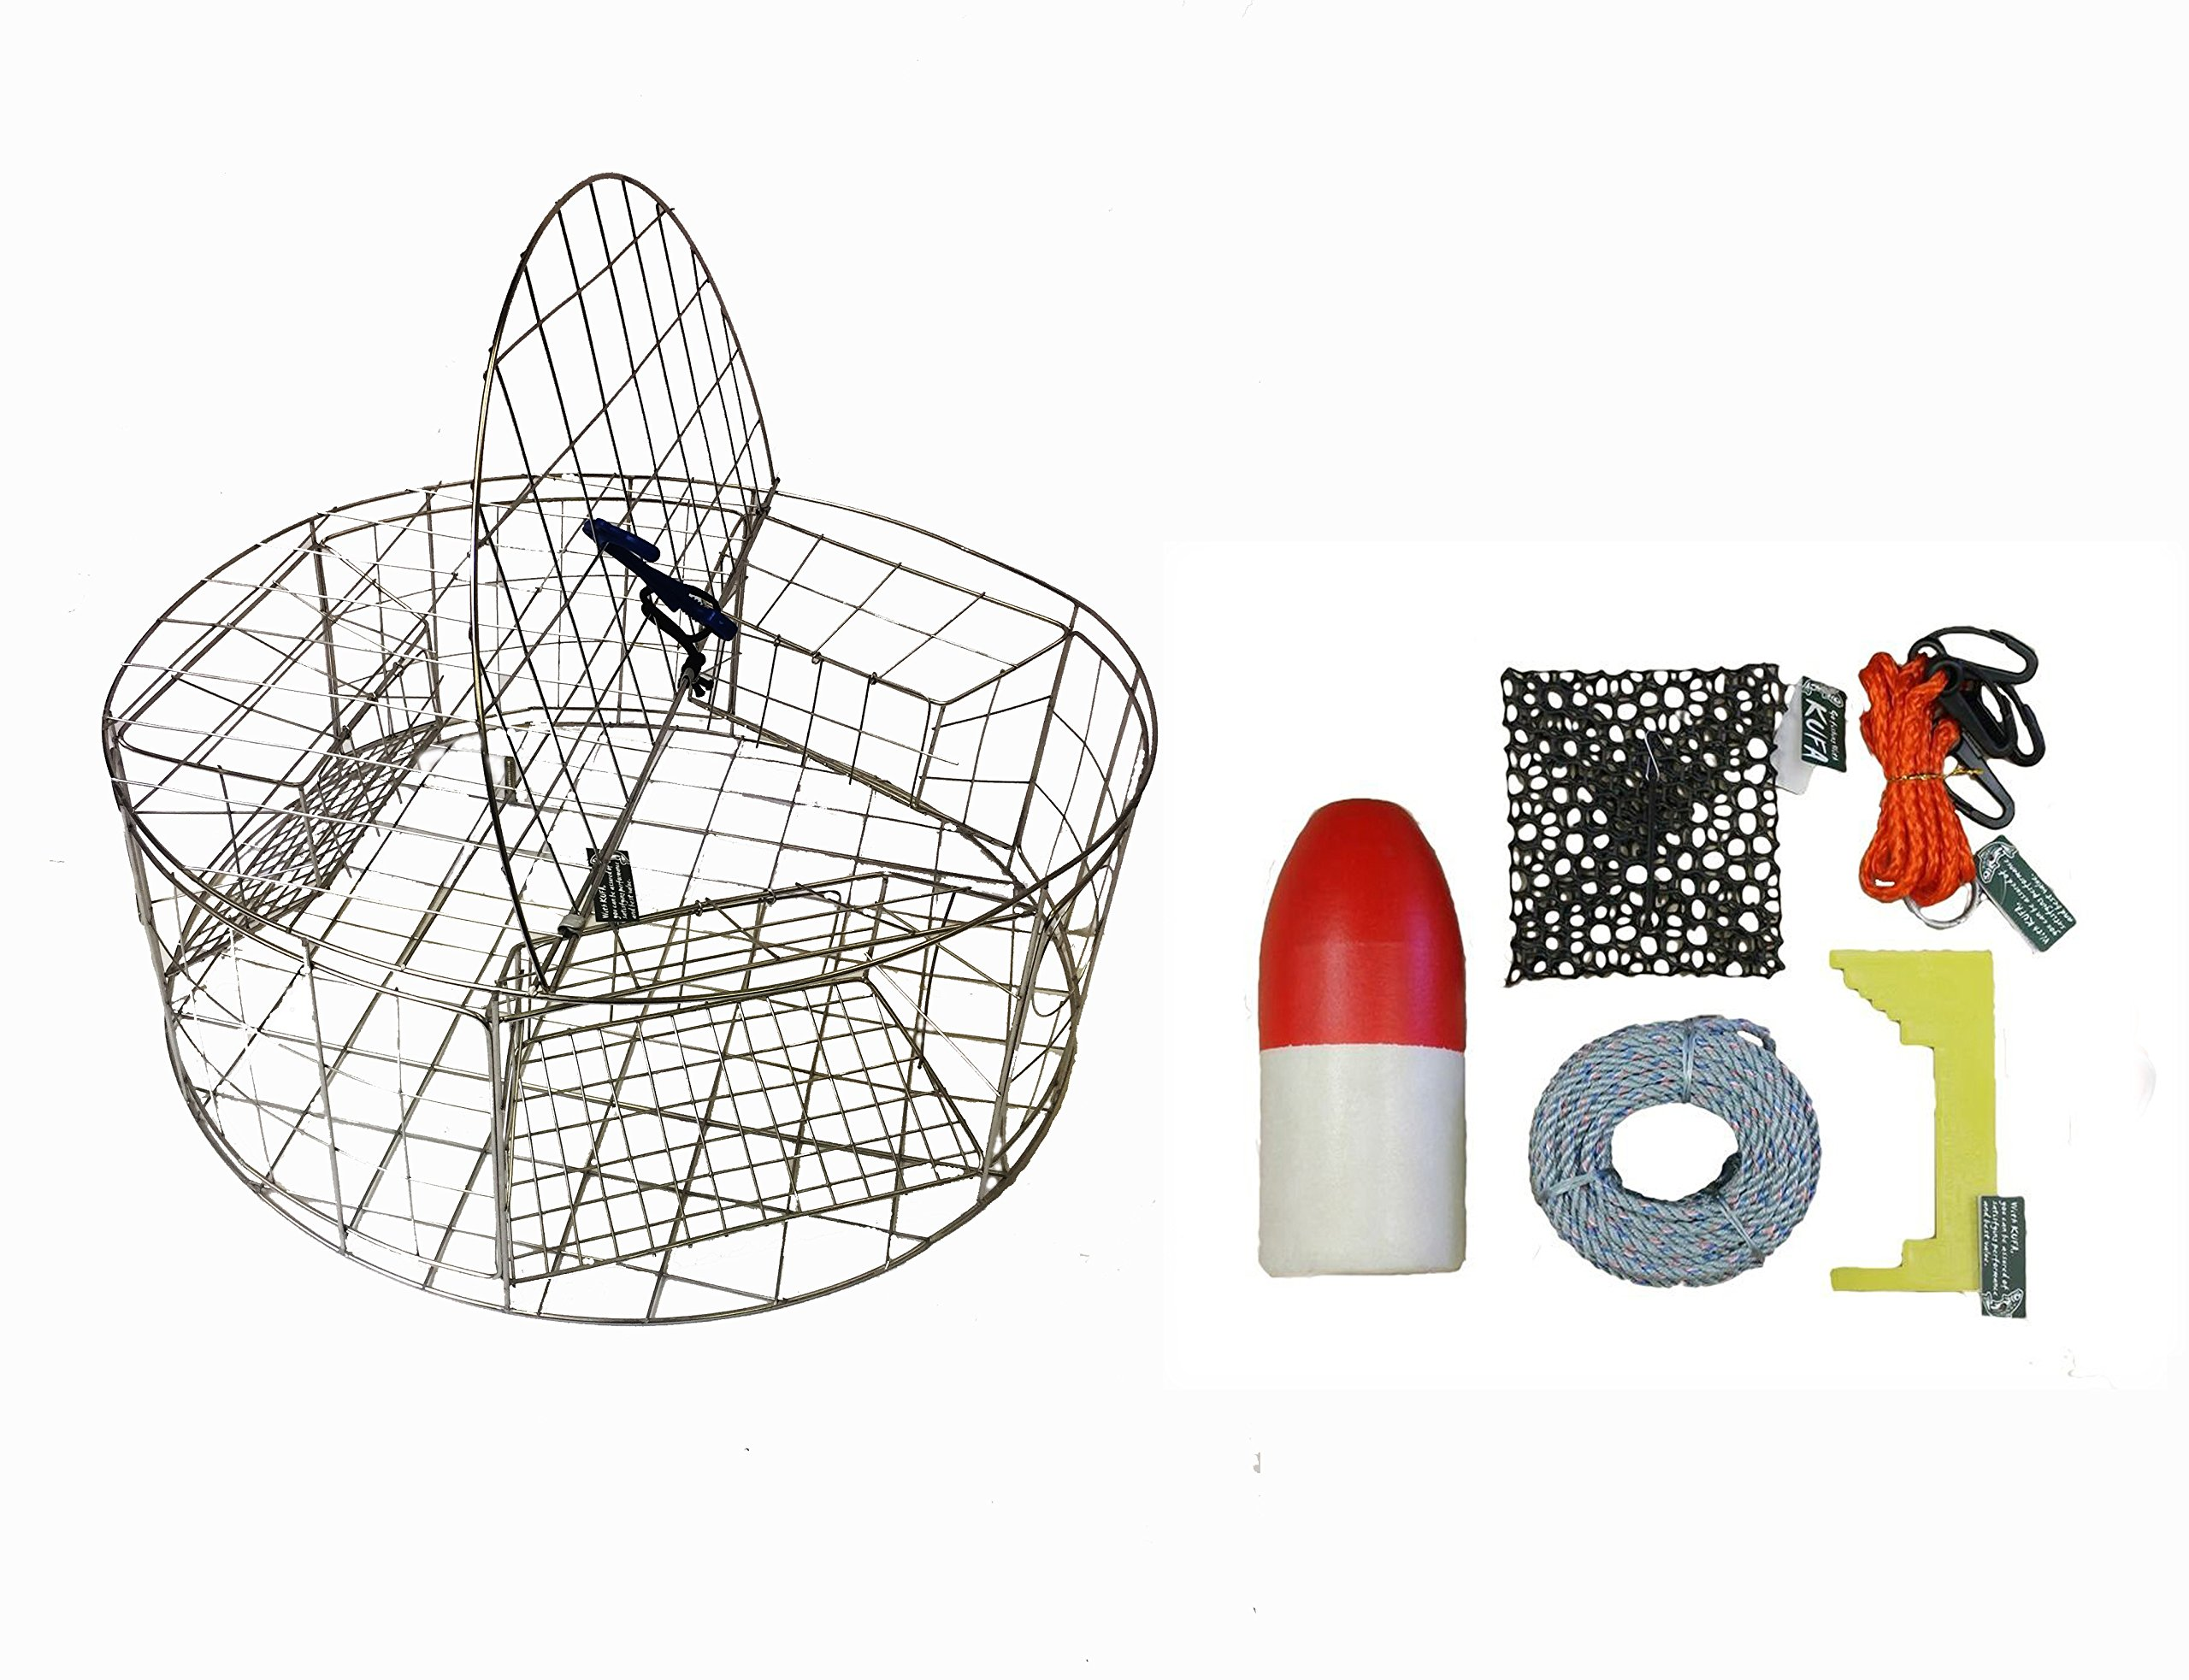 KUFA Stainless Steel Round Crab Trap with sacrificial anode Zinc & 5/16 x100' leaded rope,11'' Red/White float,Harness,Caliper,Bait Bag Combo (CT120+CAC3+ZIN1)